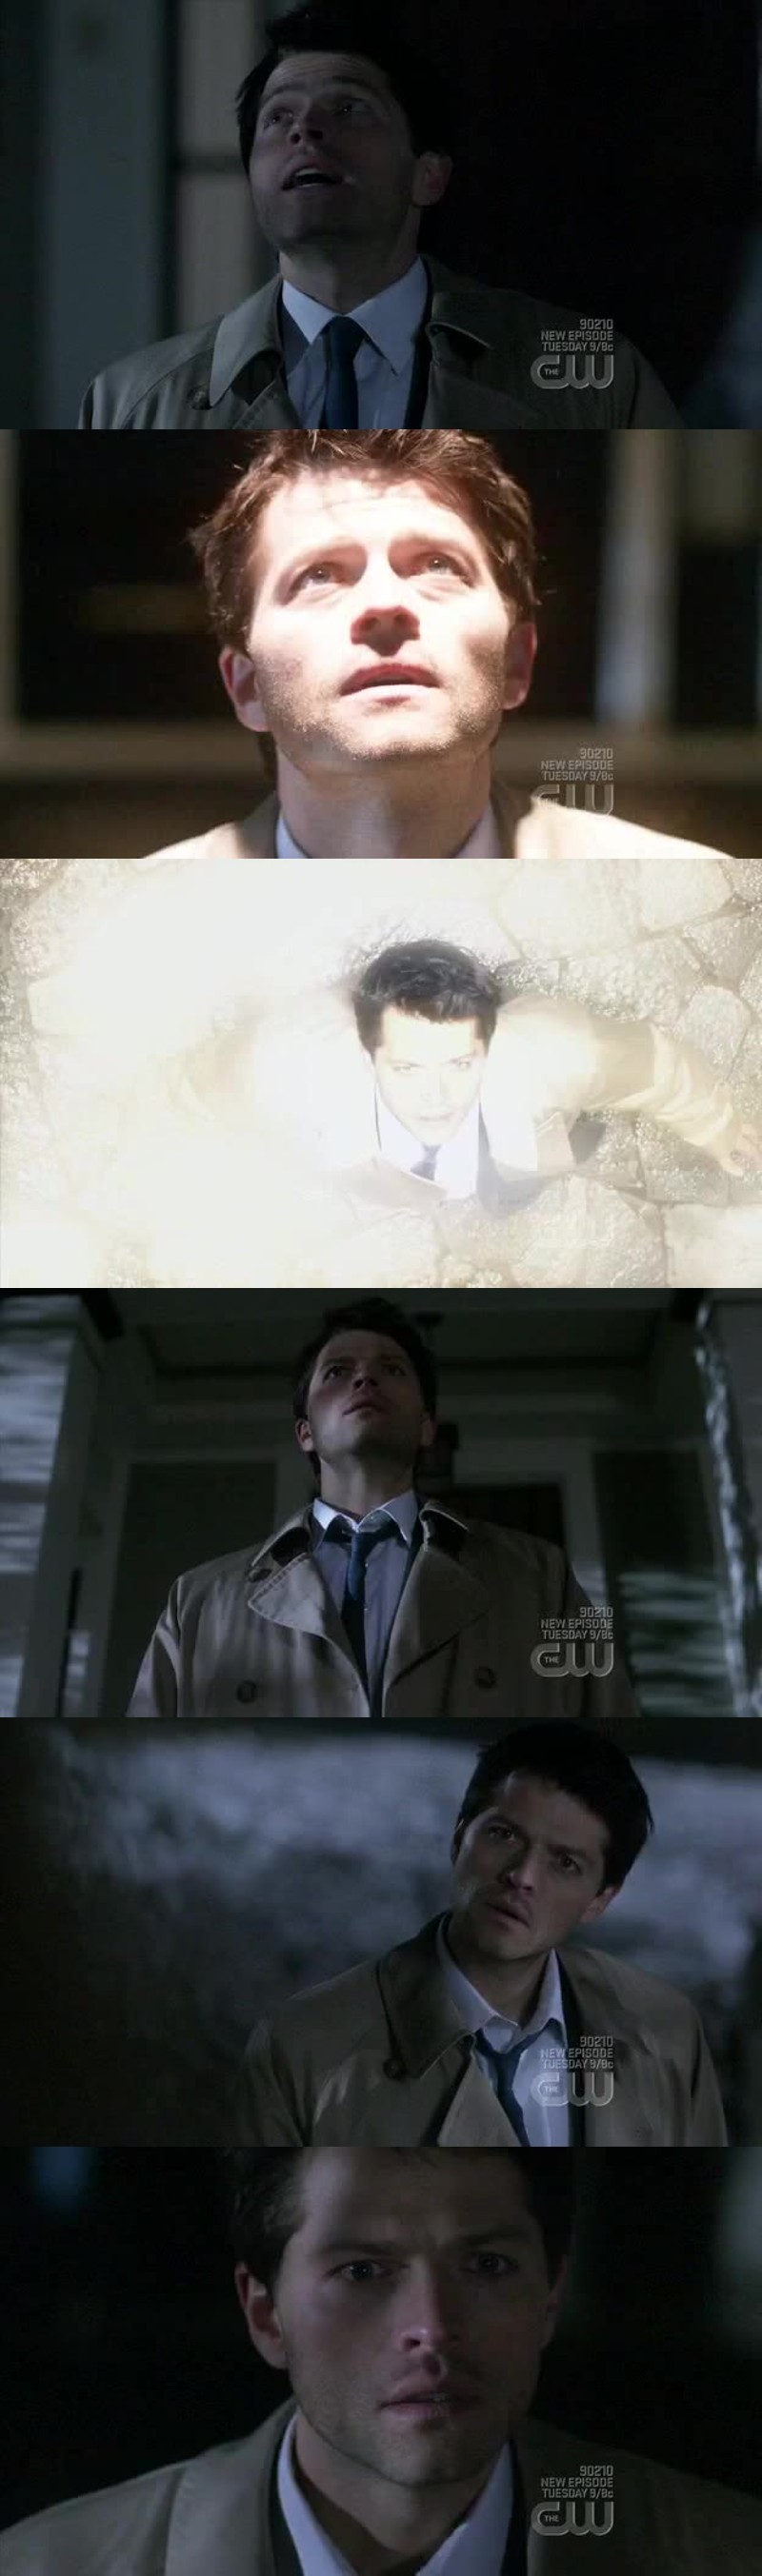 Misha Collins is really an excellente actor! We really saw the difference between Jimmy and Castiel...